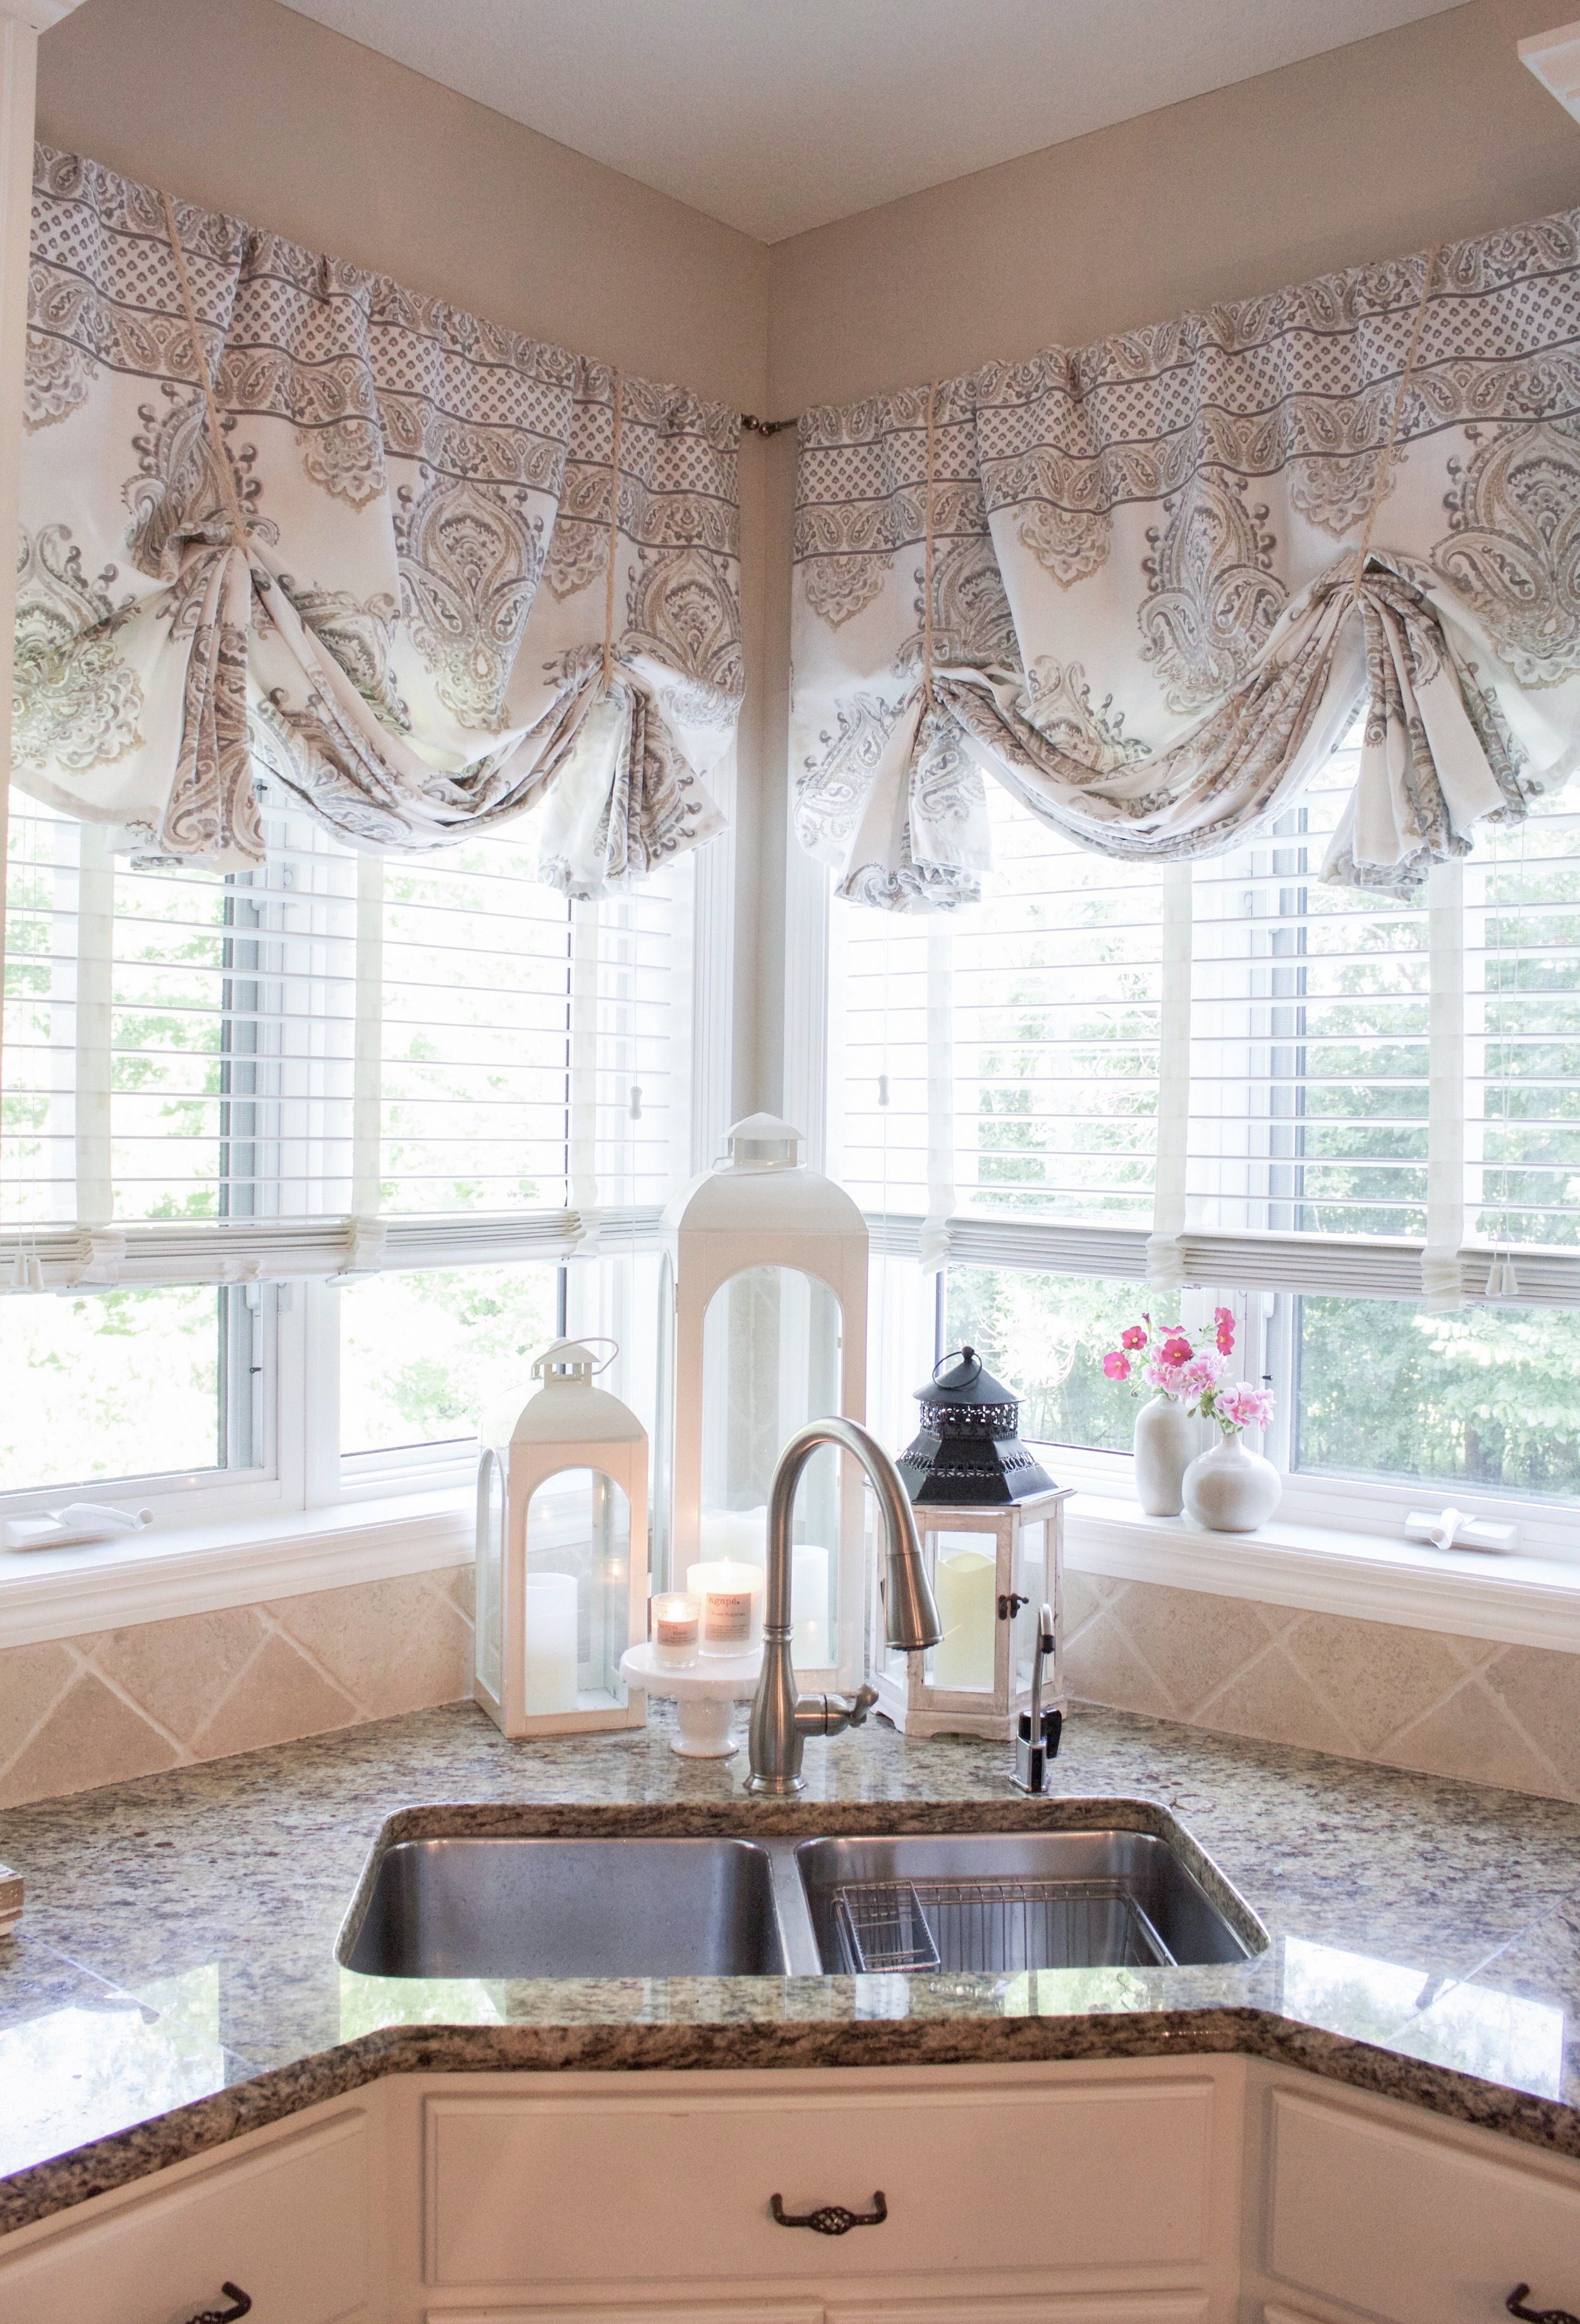 How To Make No Sew Curtain Valances Styled With Lace Kitchen Curtains And Valances Sewing Curtains Valance Farmhouse Kitchen Curtains